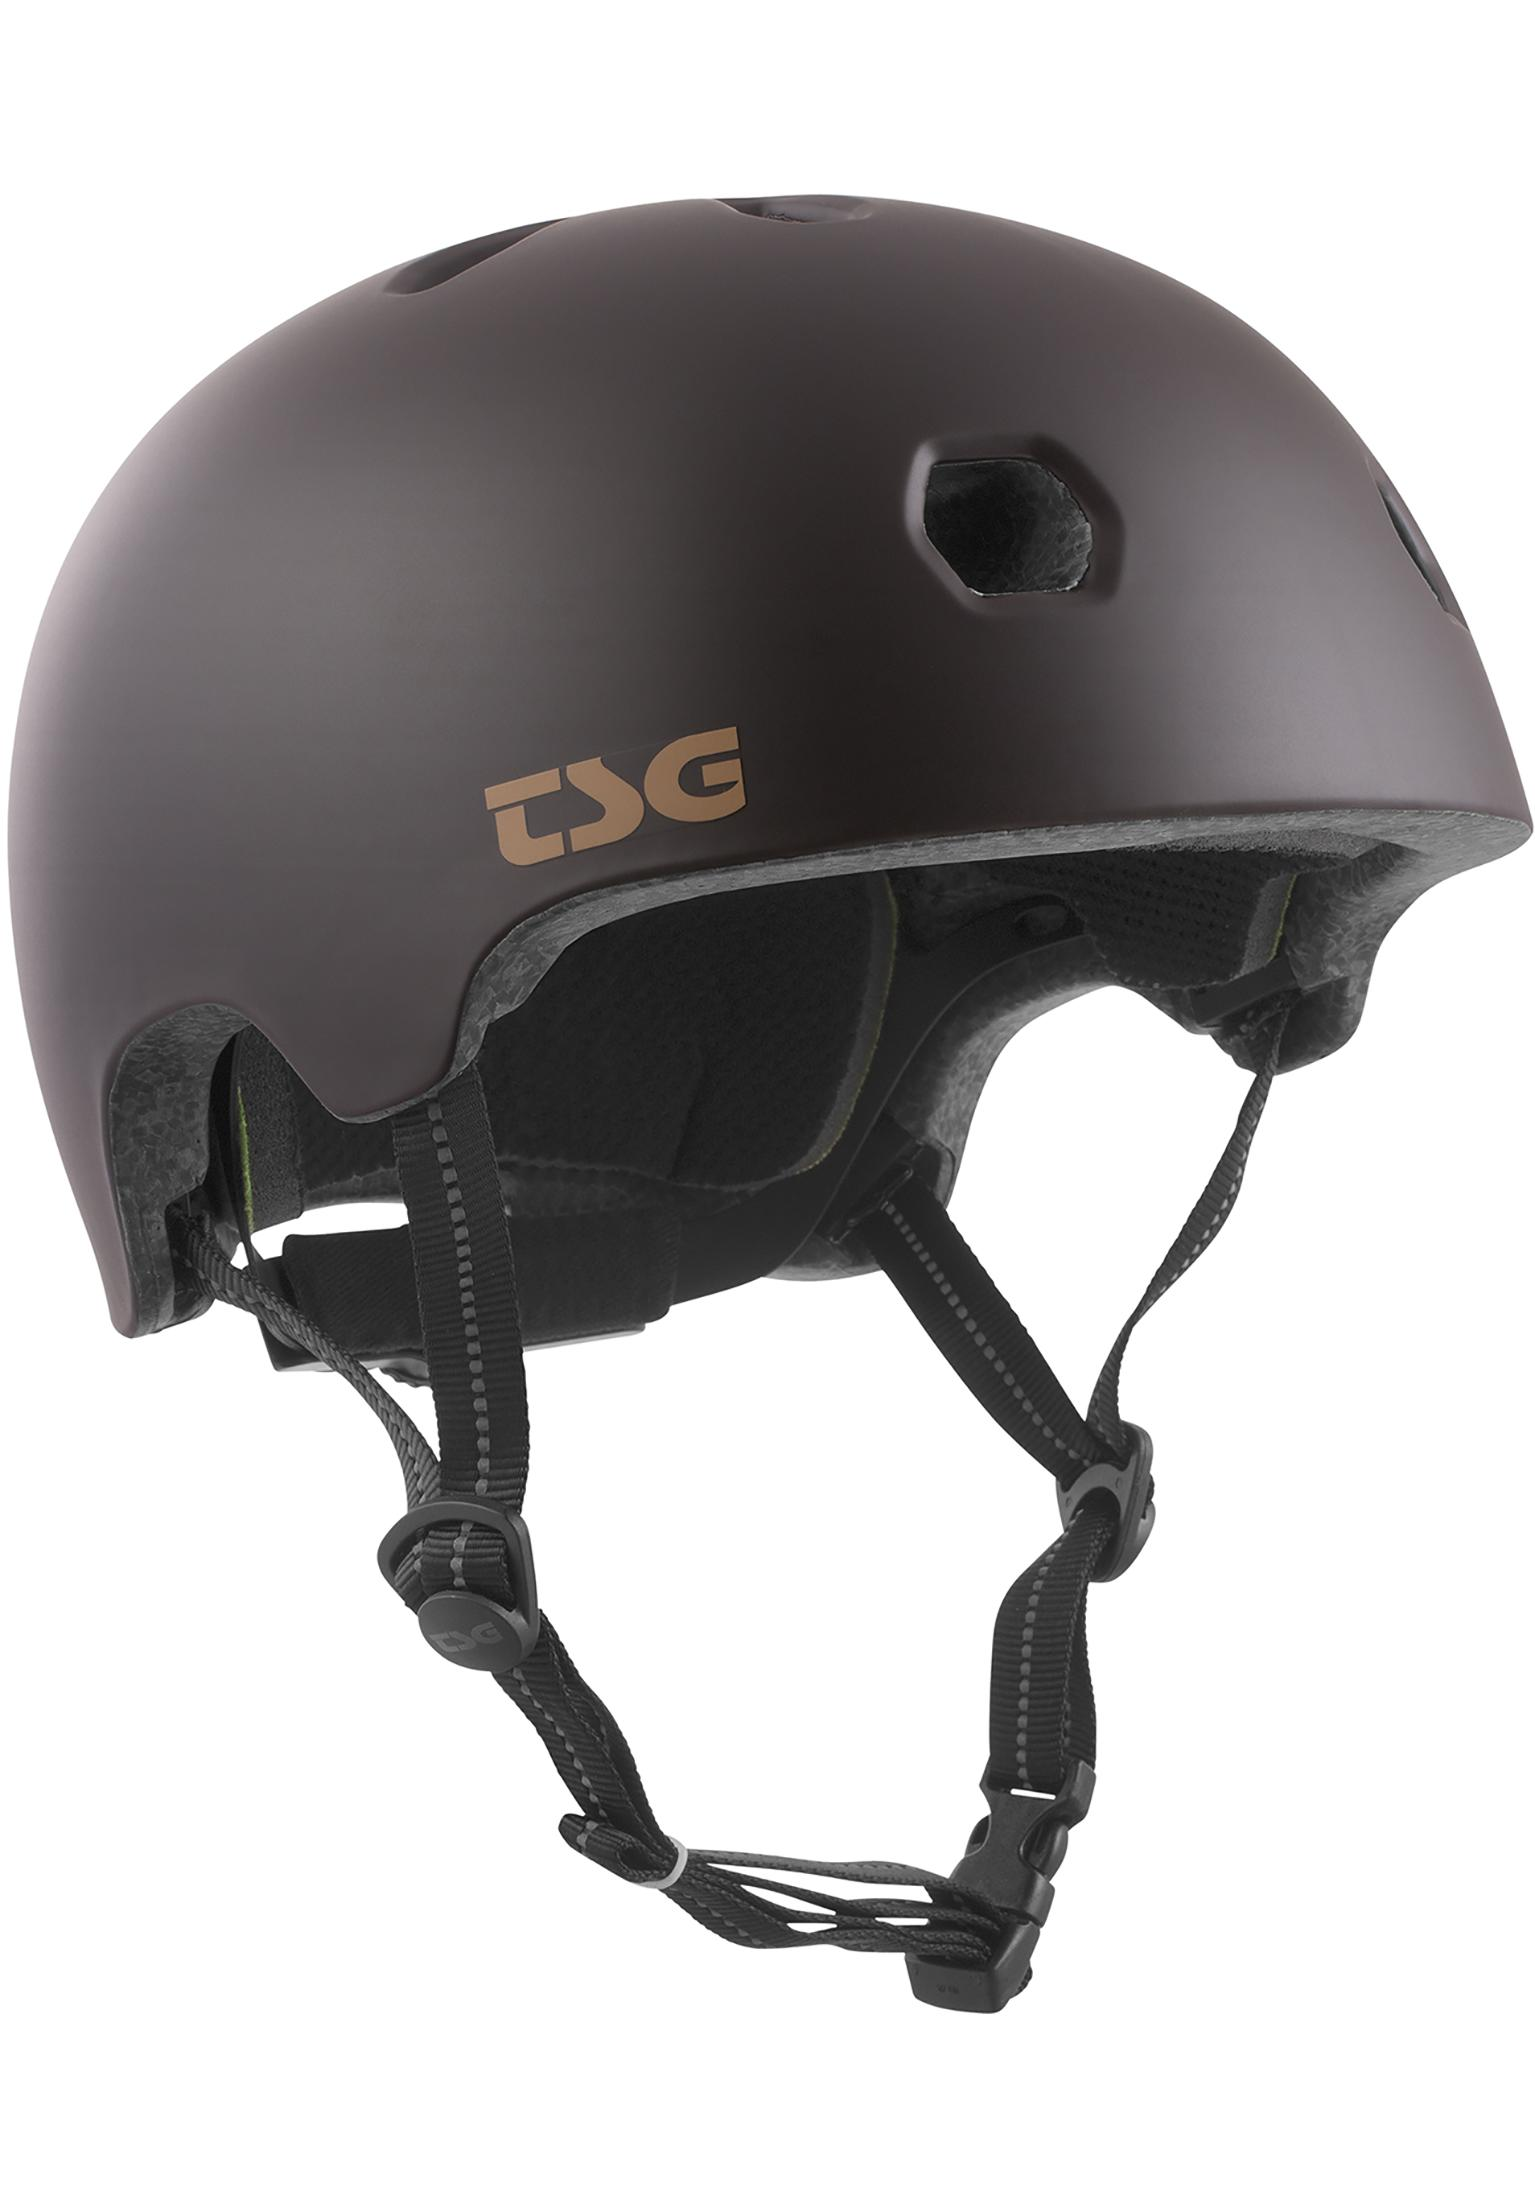 Titus_Aachen_TSG-Helme-Meta-Solid-Color-satin-black-chocolate-Vorderansicht.jpg